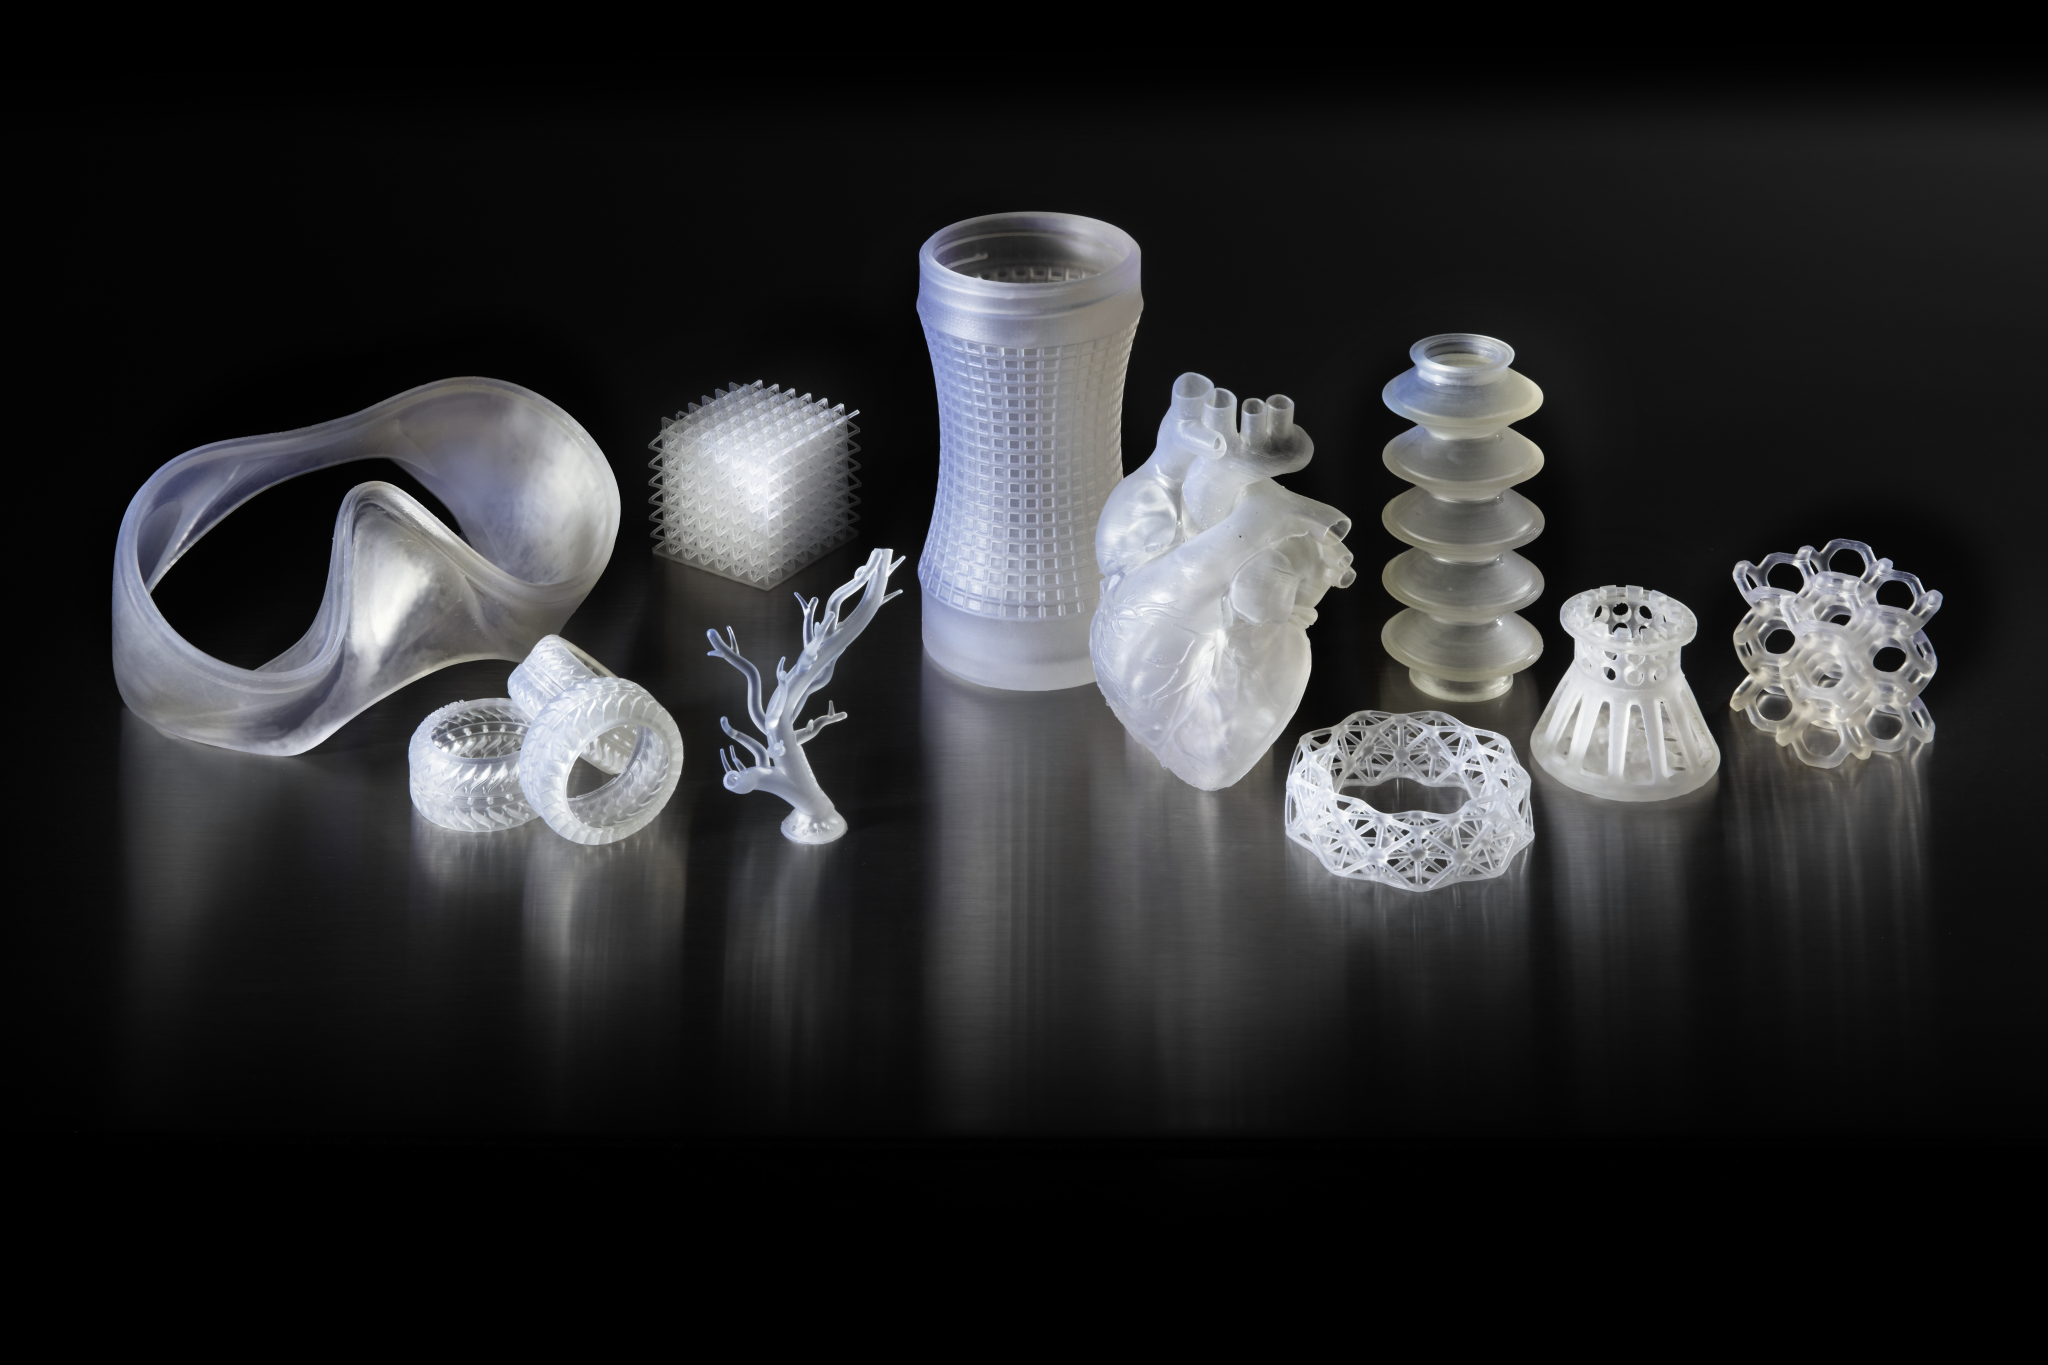 3D printed parts from Elastic Resin. Photo via Formlabs.